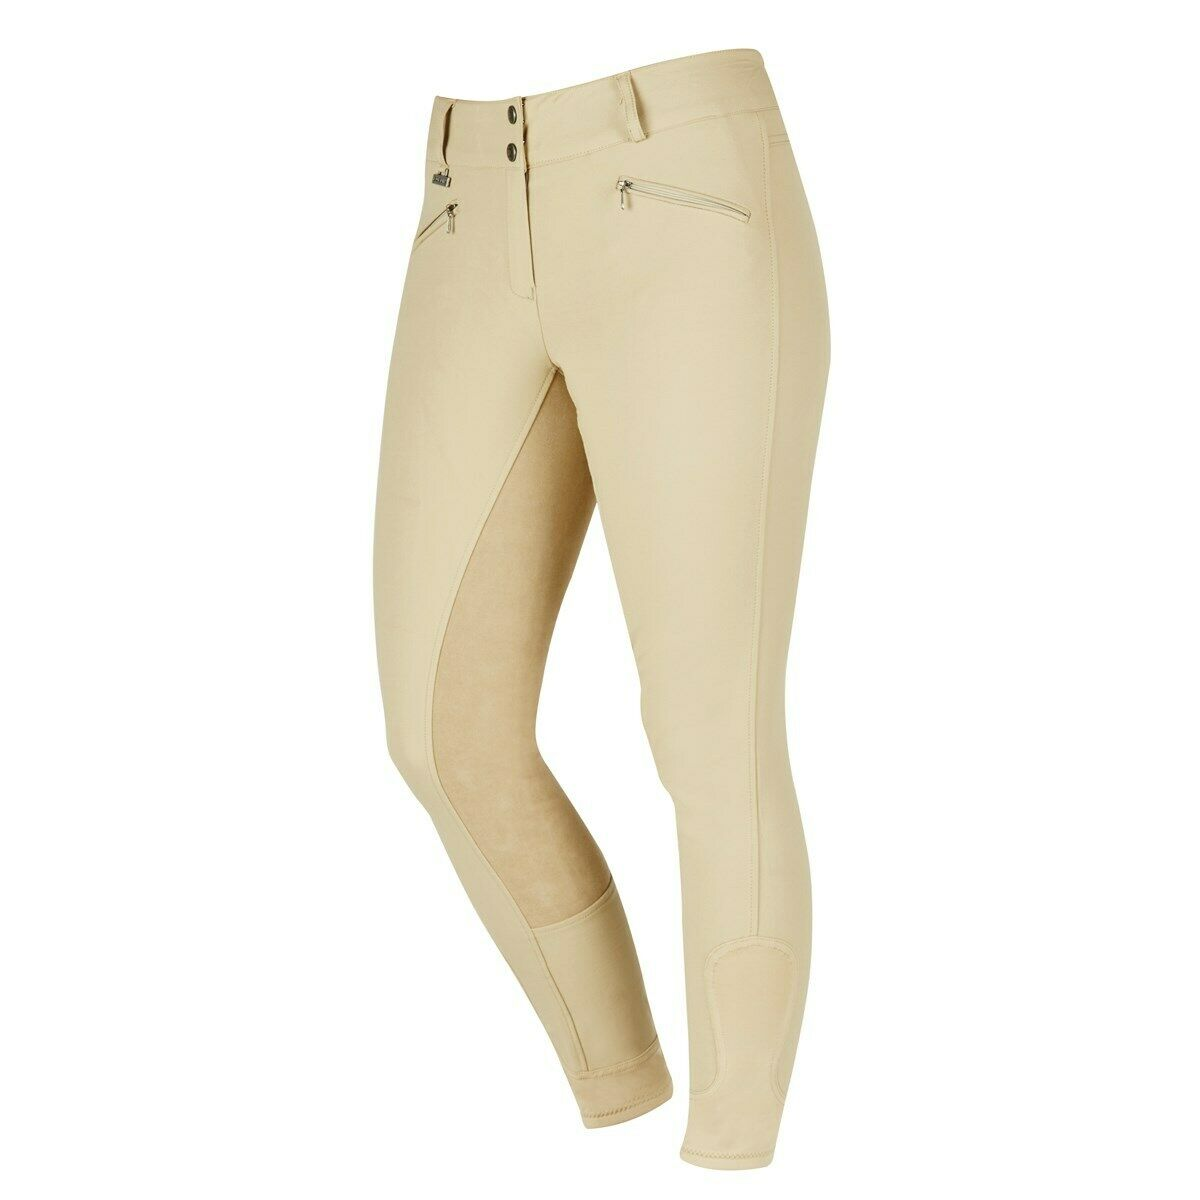 Dublin Supa Shape Performance Full Seat Breeches In Beige Size 12 30